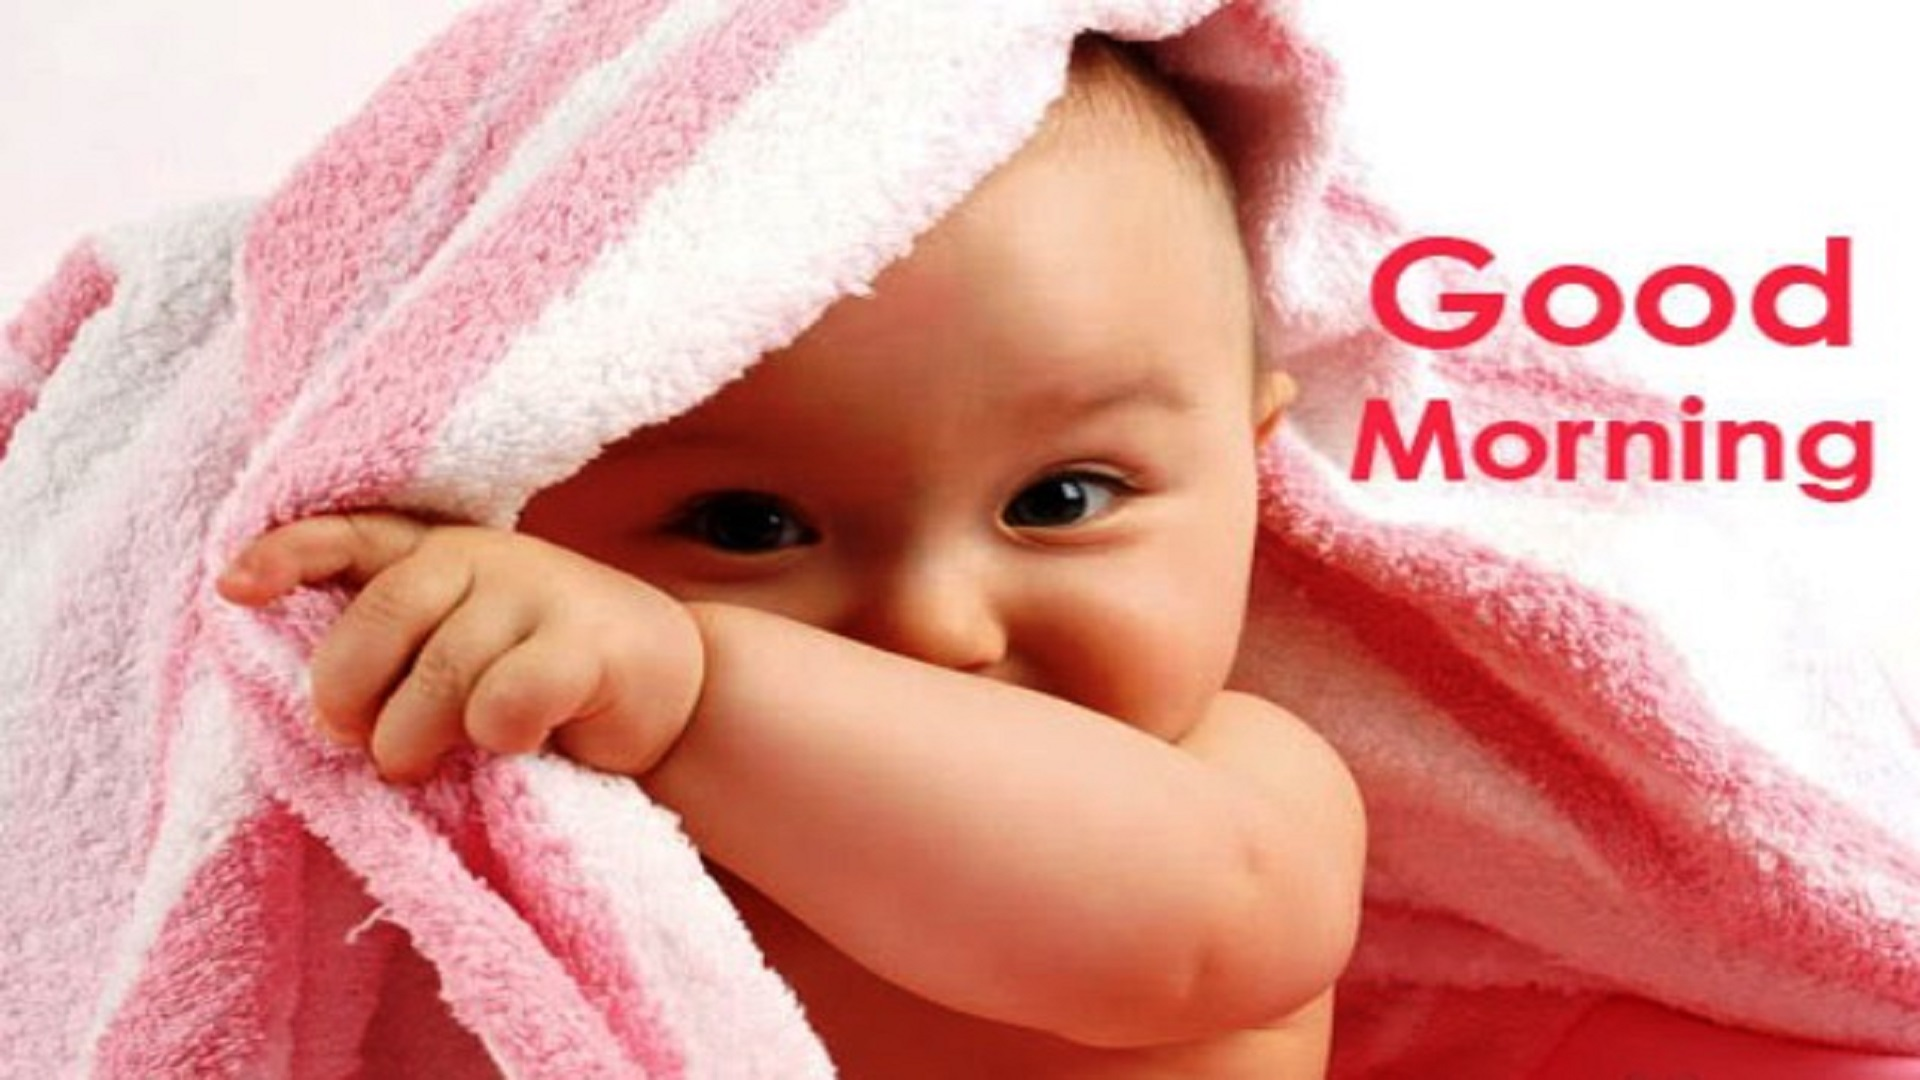 Wallpaper download good morning - Baby Saying Hd Good Morning Wallpapers Images Free